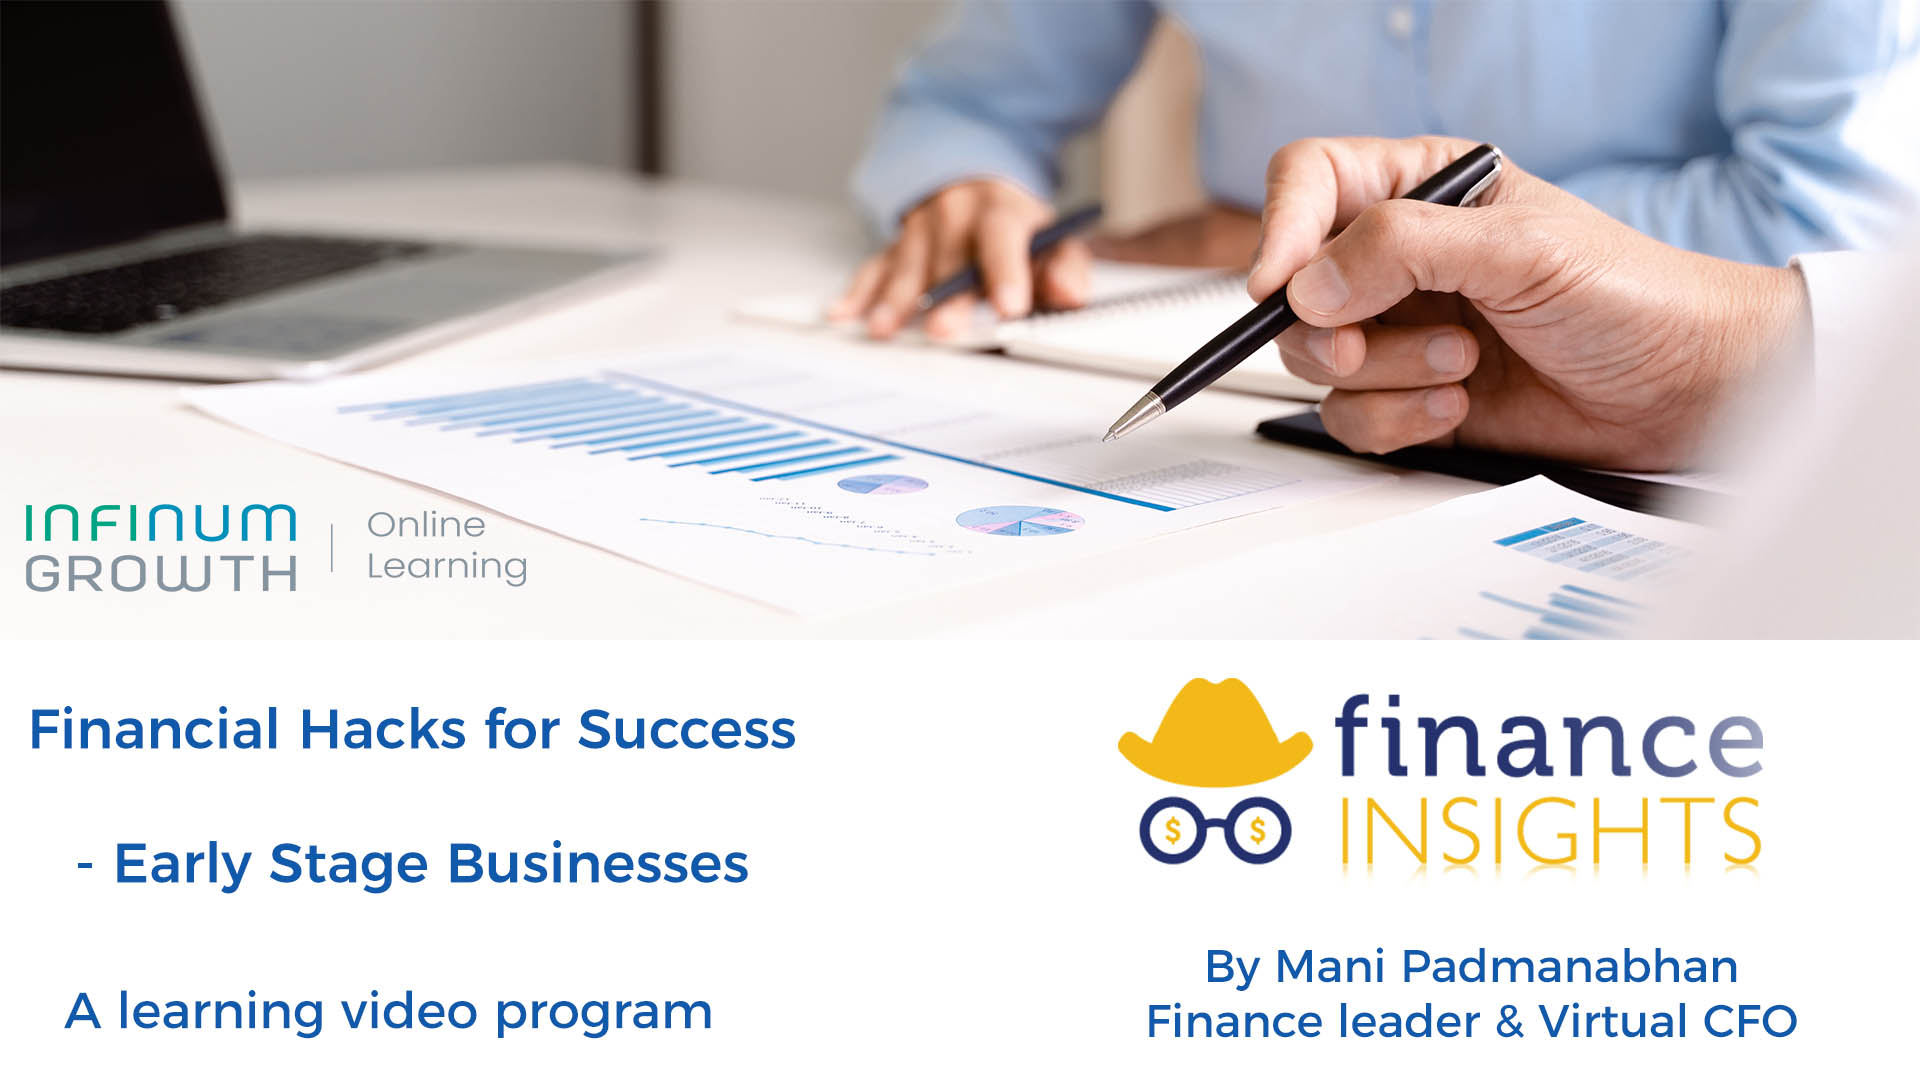 Financial Hacks for Early Stage Businesses